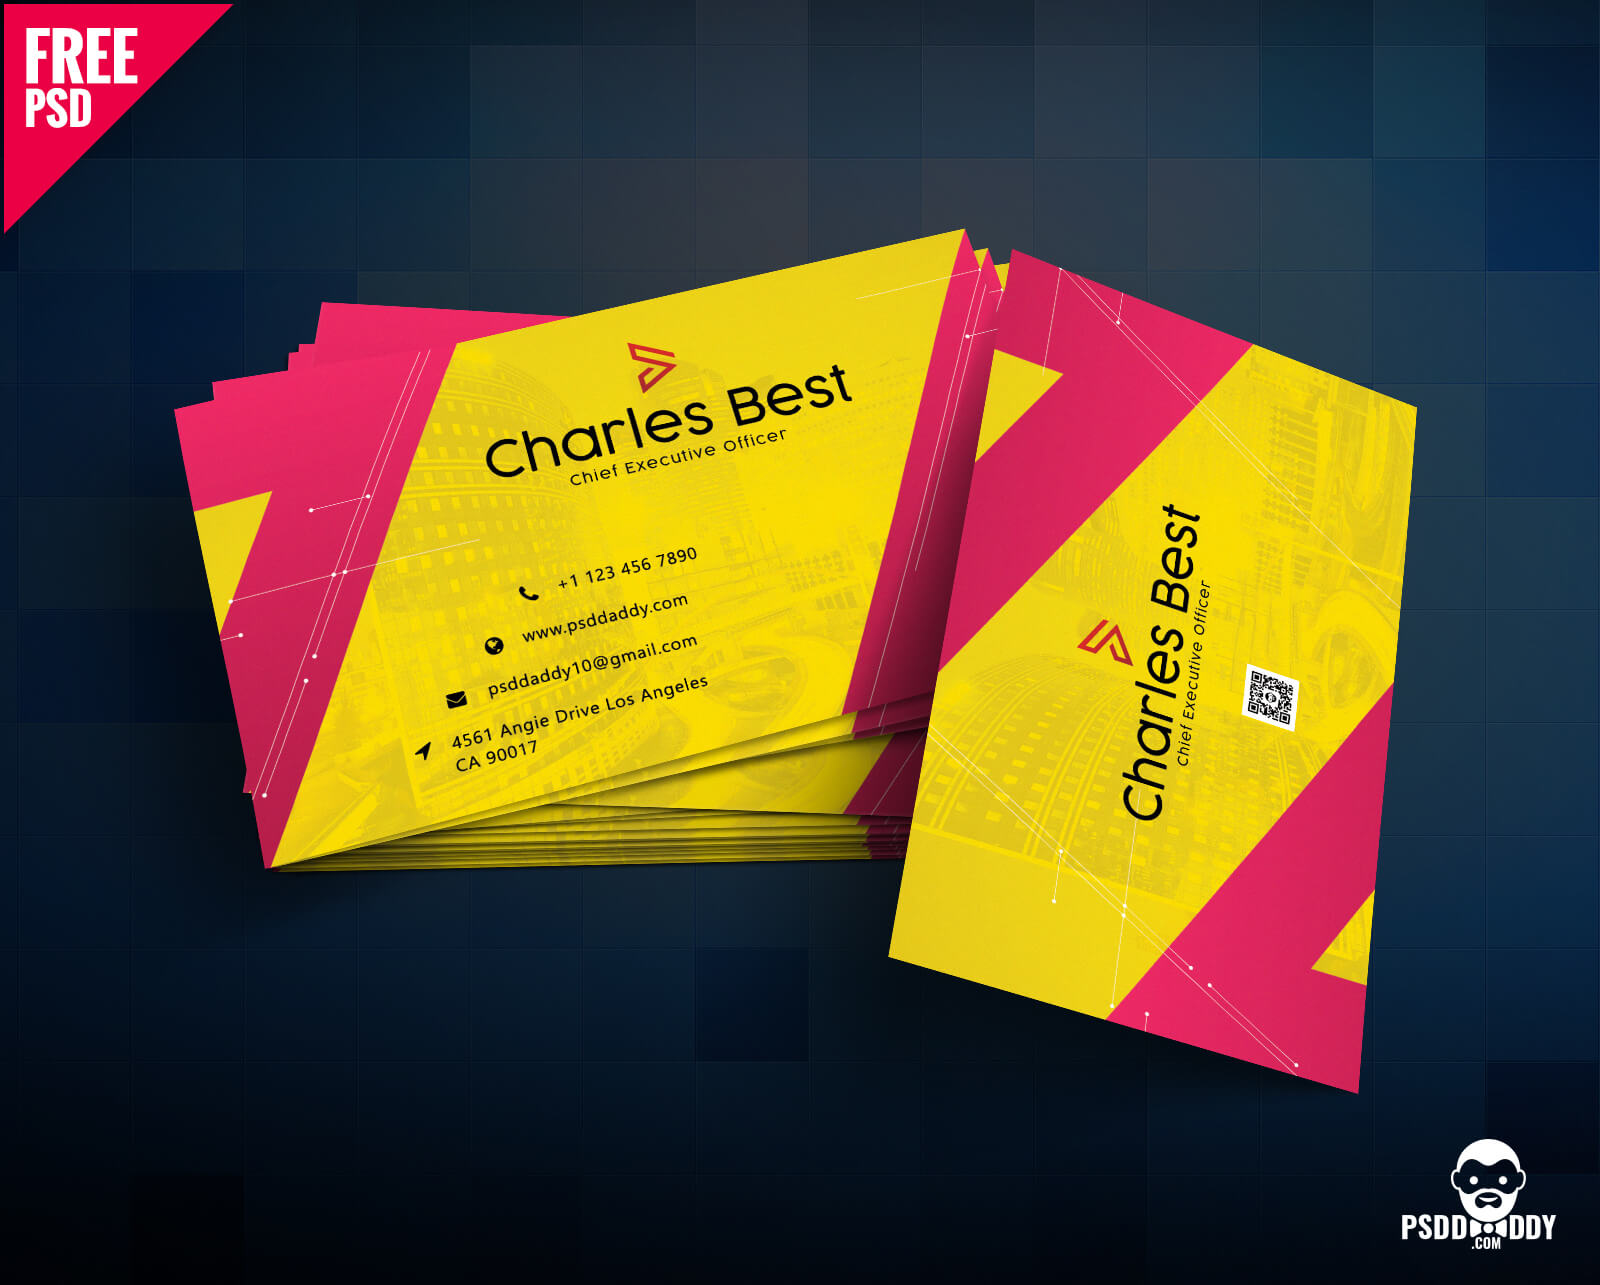 Download] Creative Business Card Free Psd | Psddaddy Throughout Business Card Template Photoshop Cs6